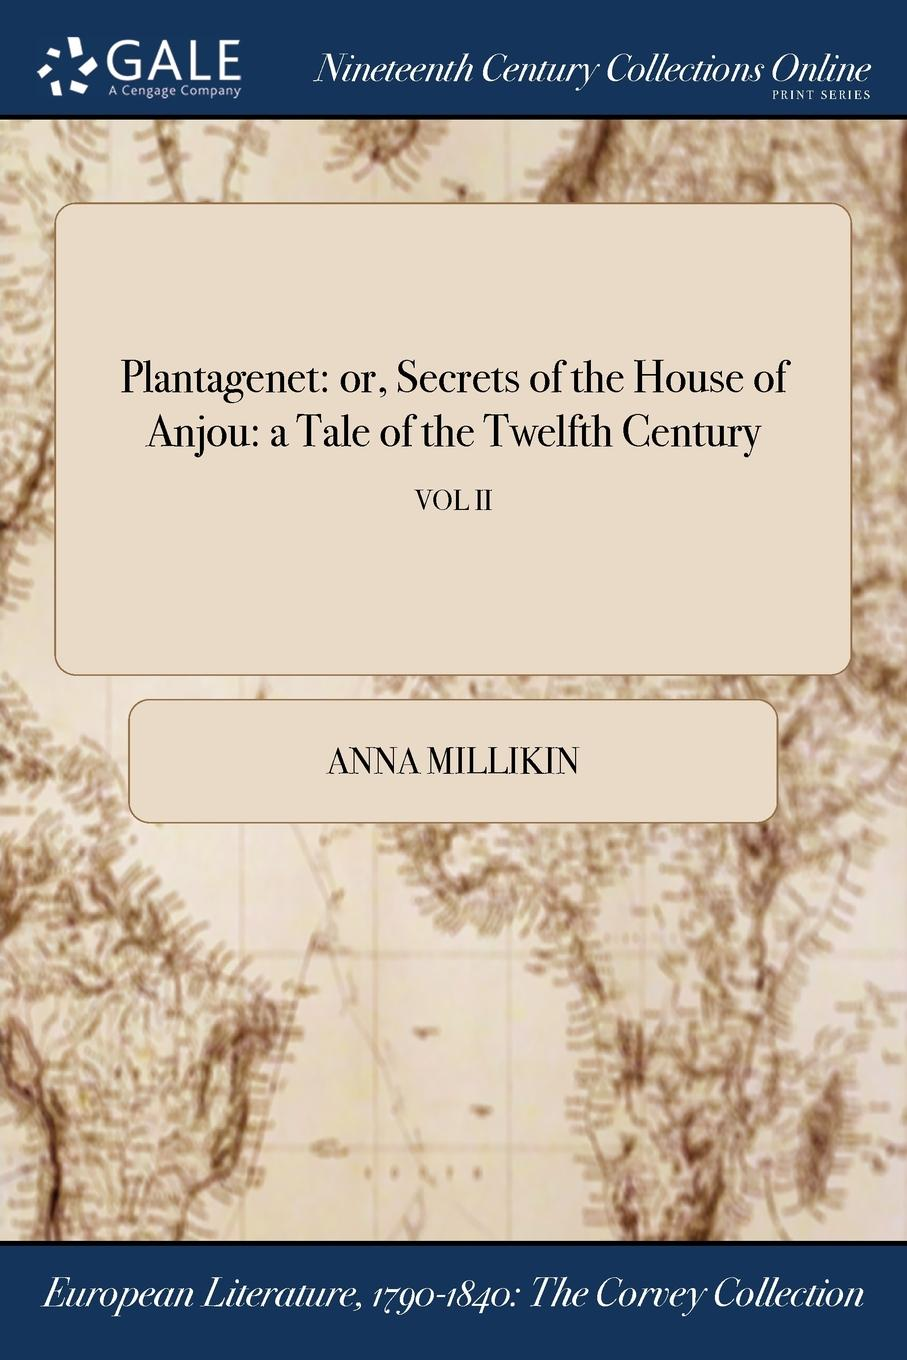 Anna Millikin Plantagenet. or, Secrets of the House of Anjou: a Tale of the Twelfth Century; VOL II